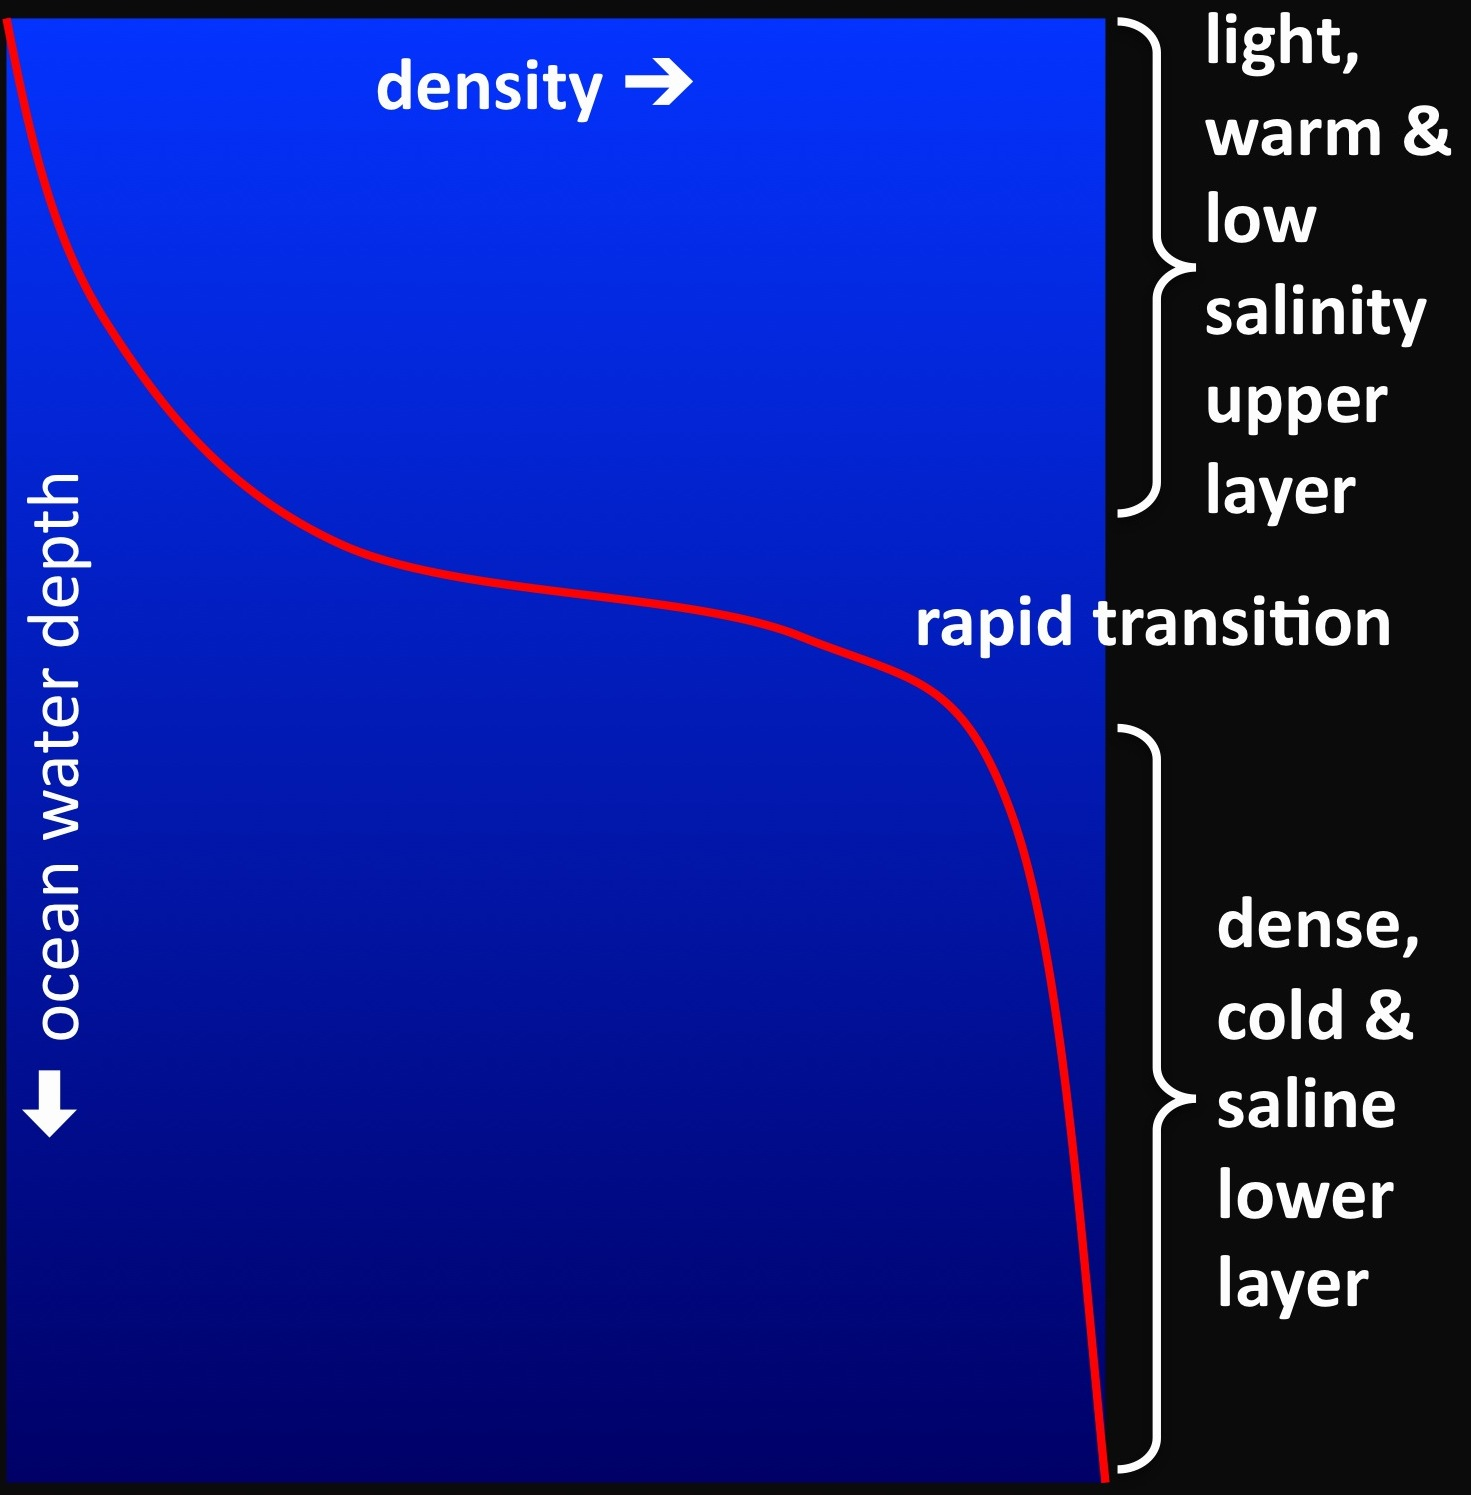 Idealized schematic of ocean denisty variability with depth